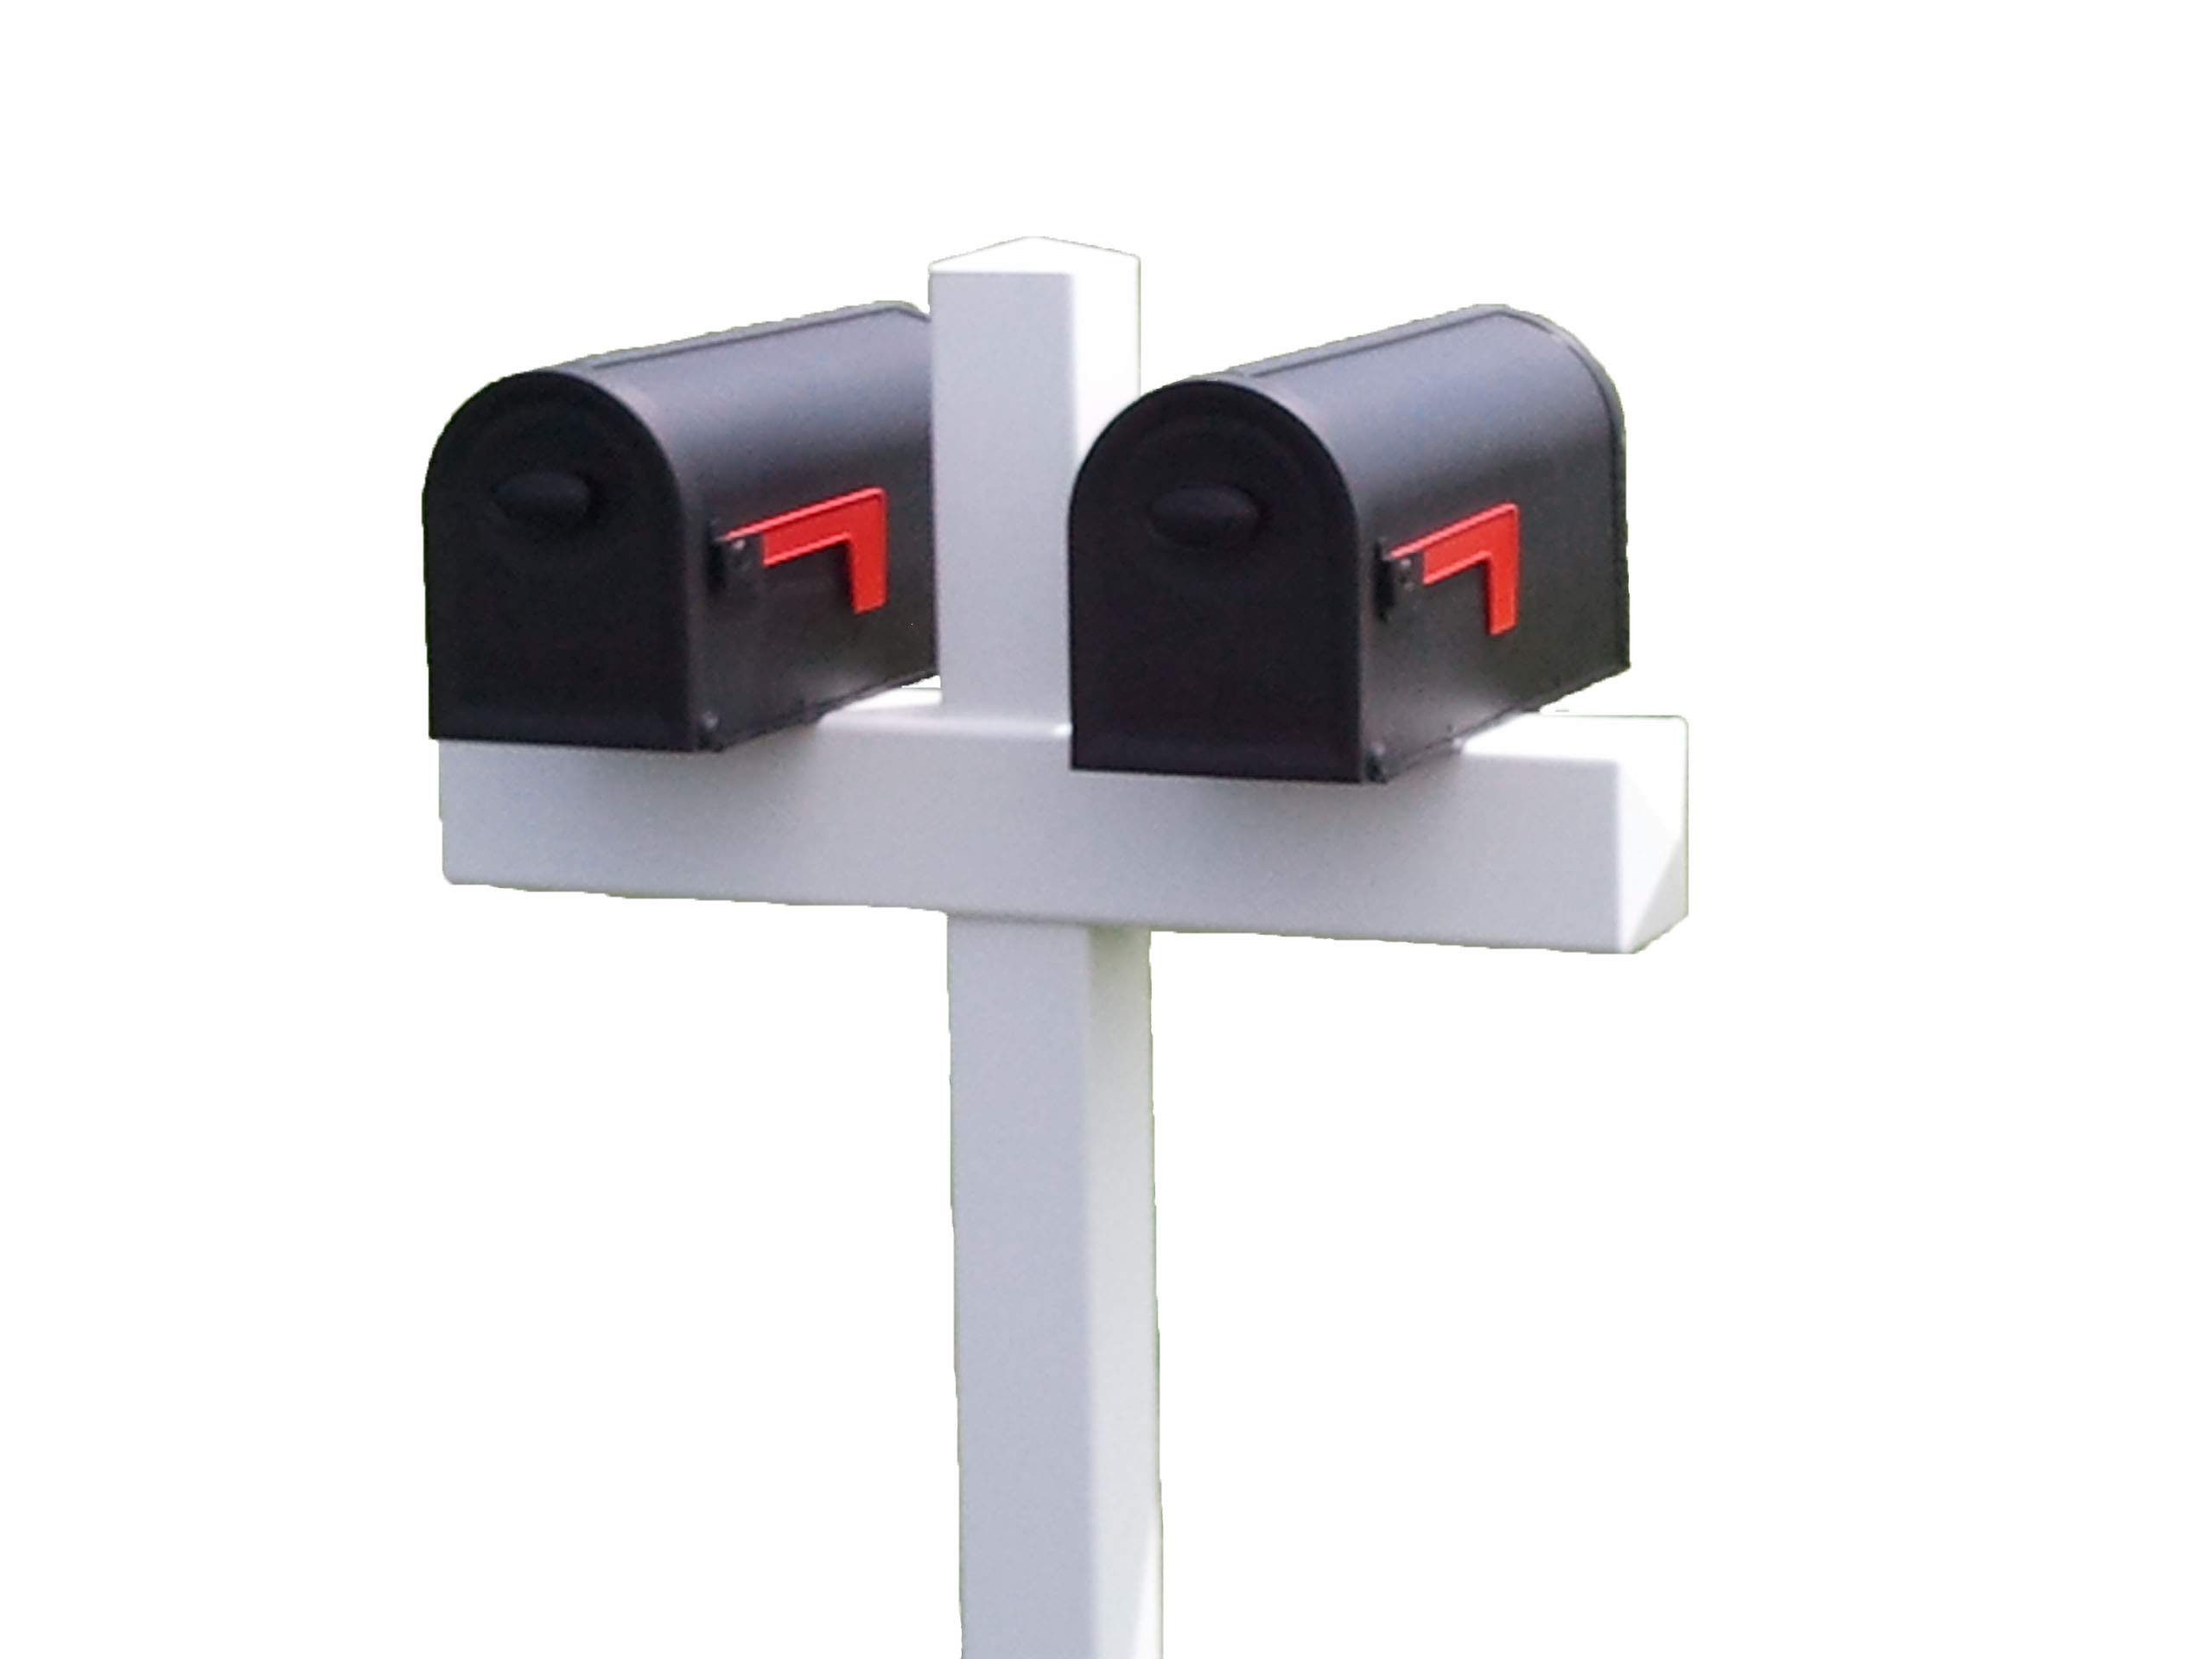 Handy Post Double 54-in x 32-in White Vinyl Mailbox Post Sleeve